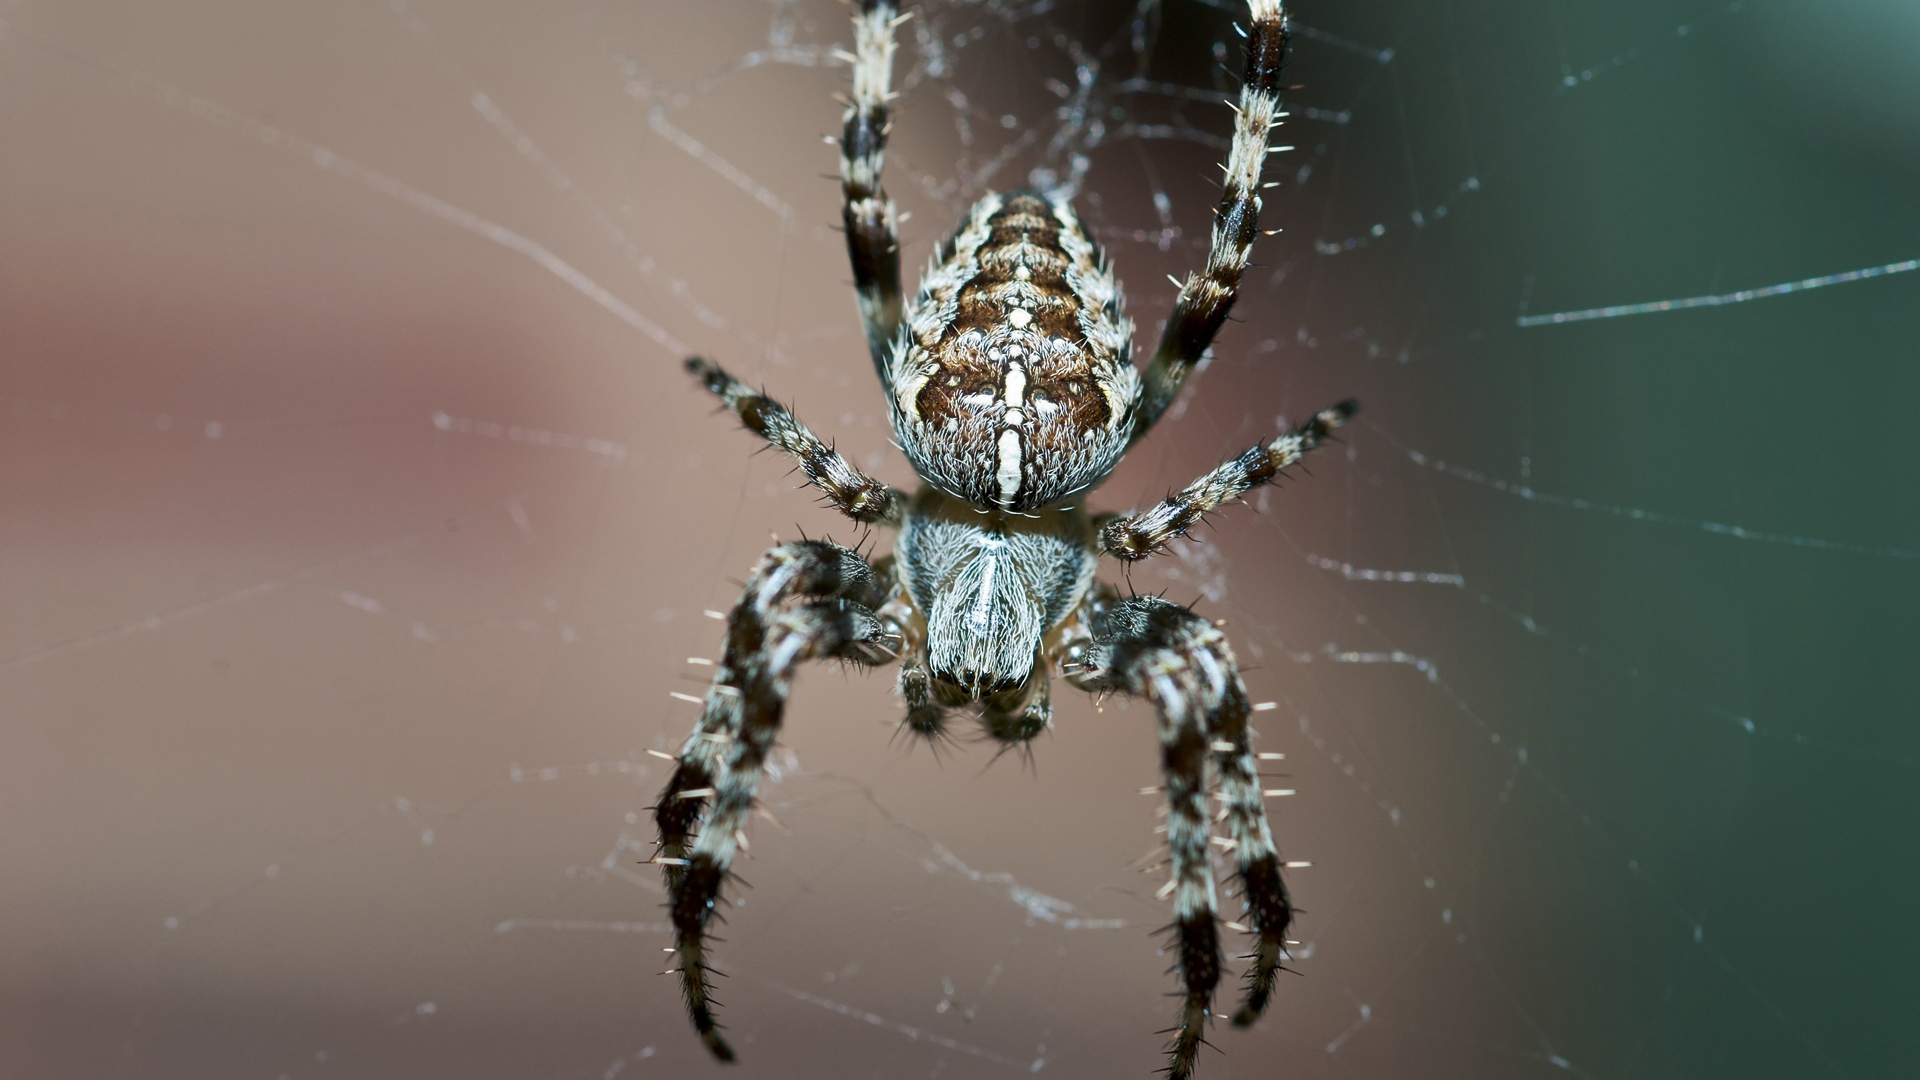 Download Wallpaper 1920x1080 spider insect legs small Full HD 1920x1080